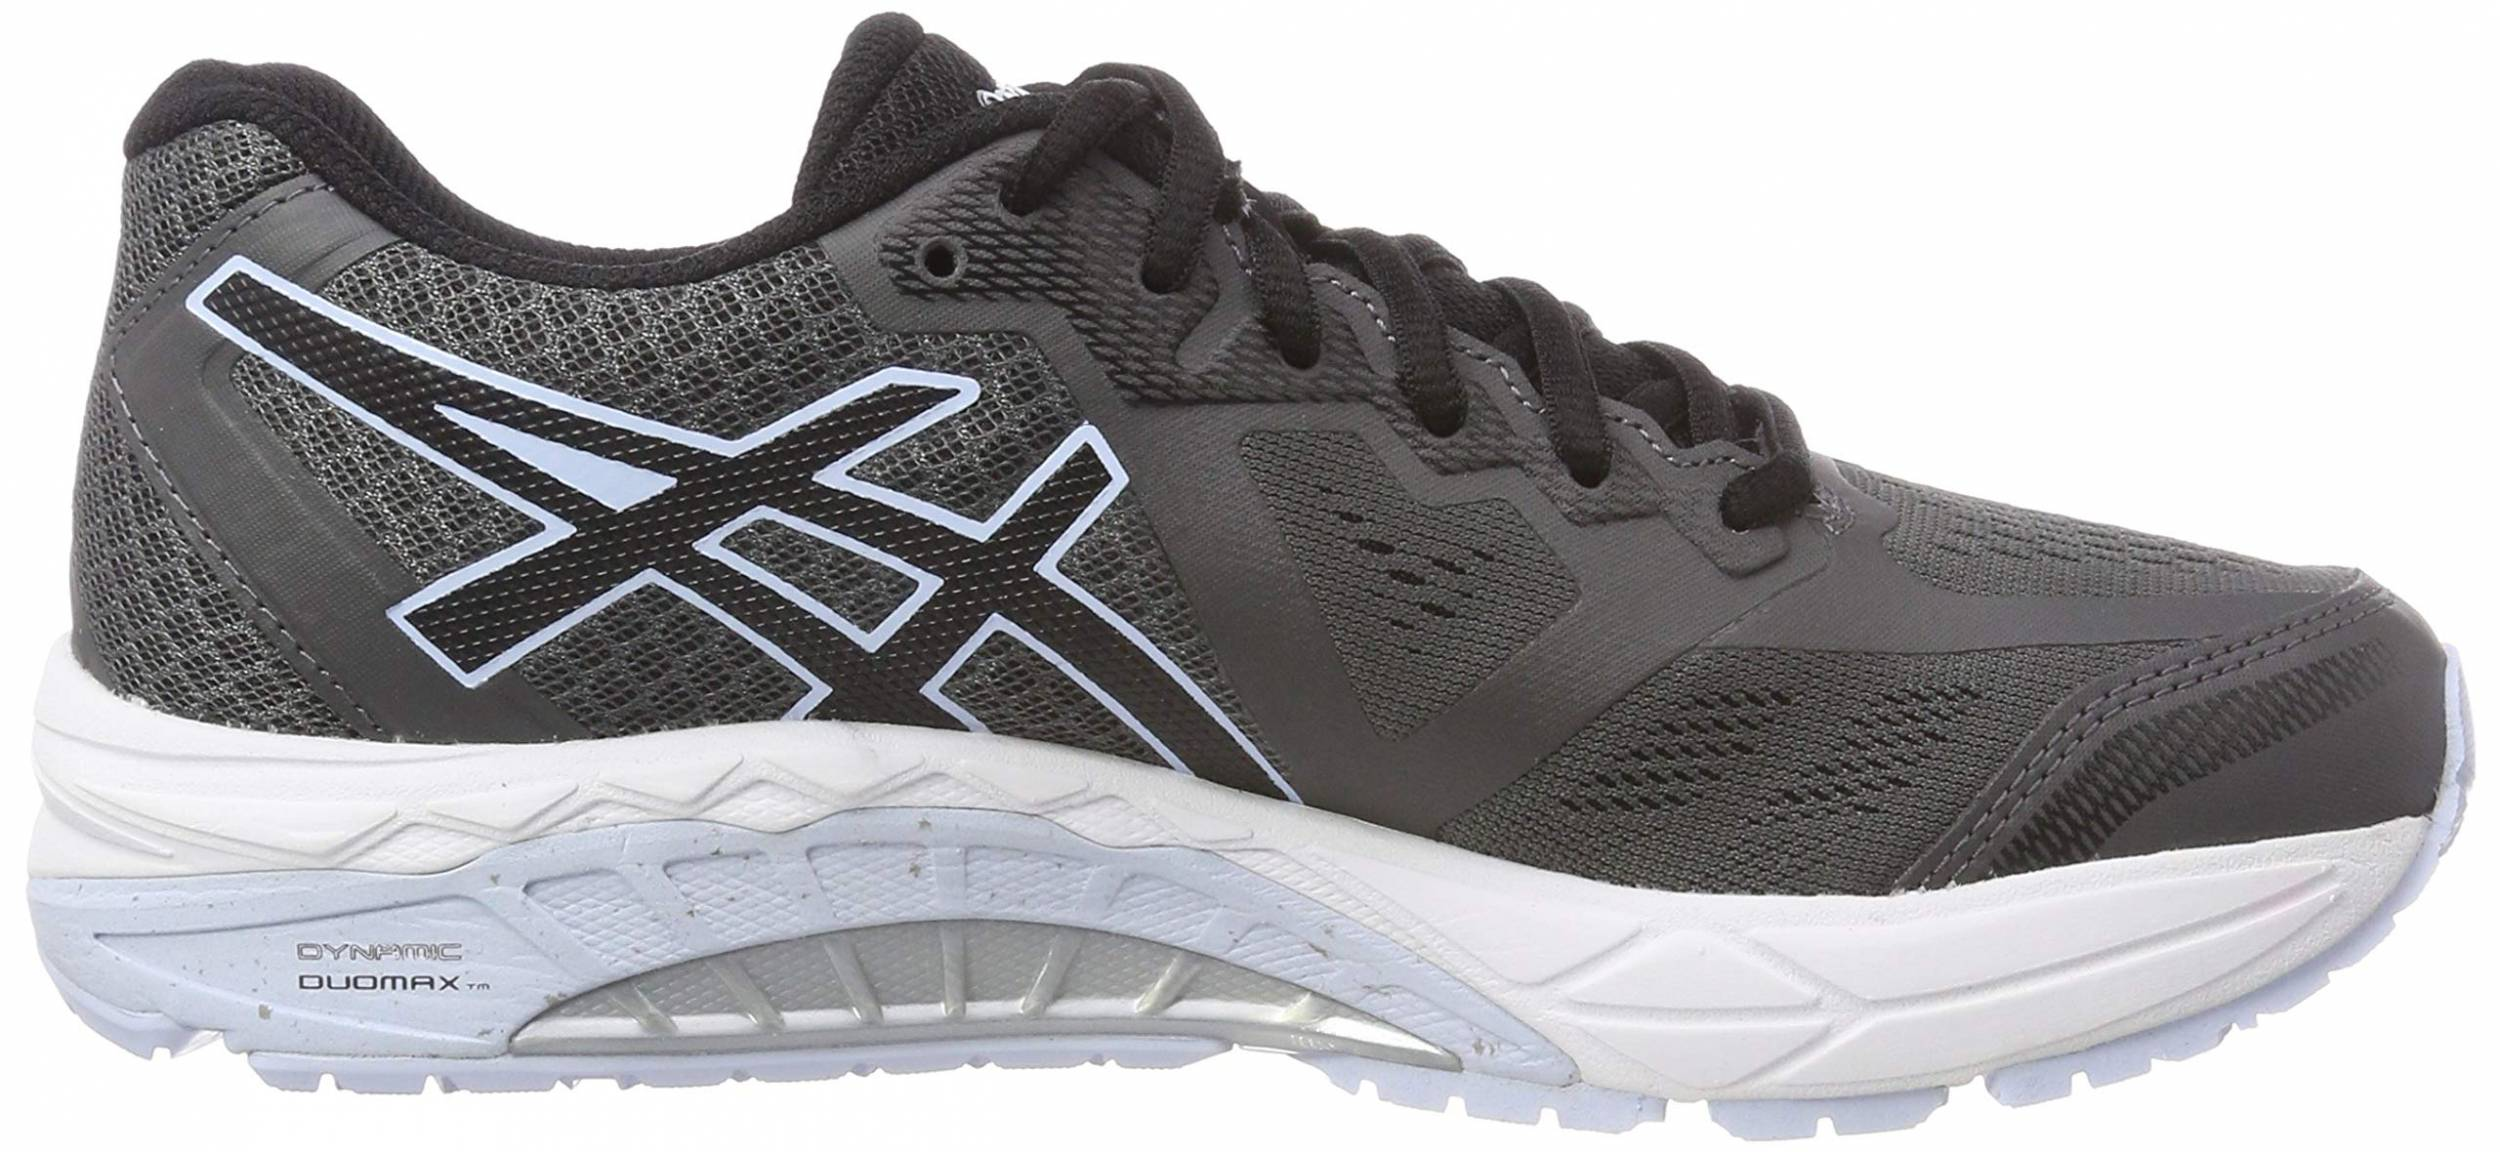 7 Reasons to/NOT to Buy Asics Gel Foundation 13 (Aug 2021) | RunRepeat